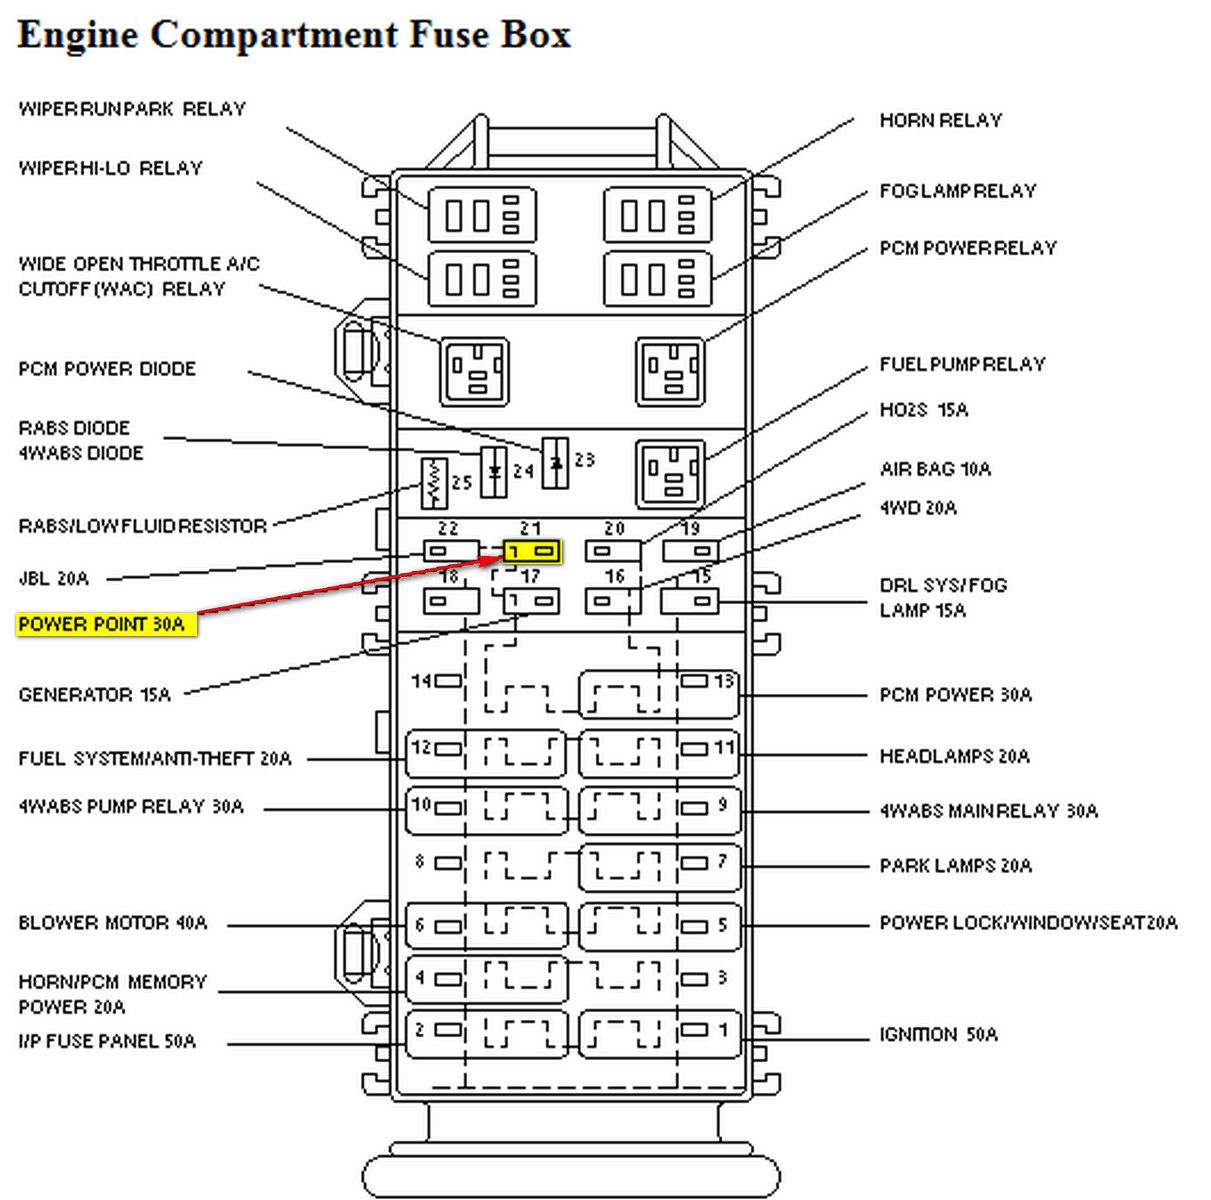 medium resolution of 95 ford ranger fuse diagram wiring diagram note 1995 ranger fuse panel diagram